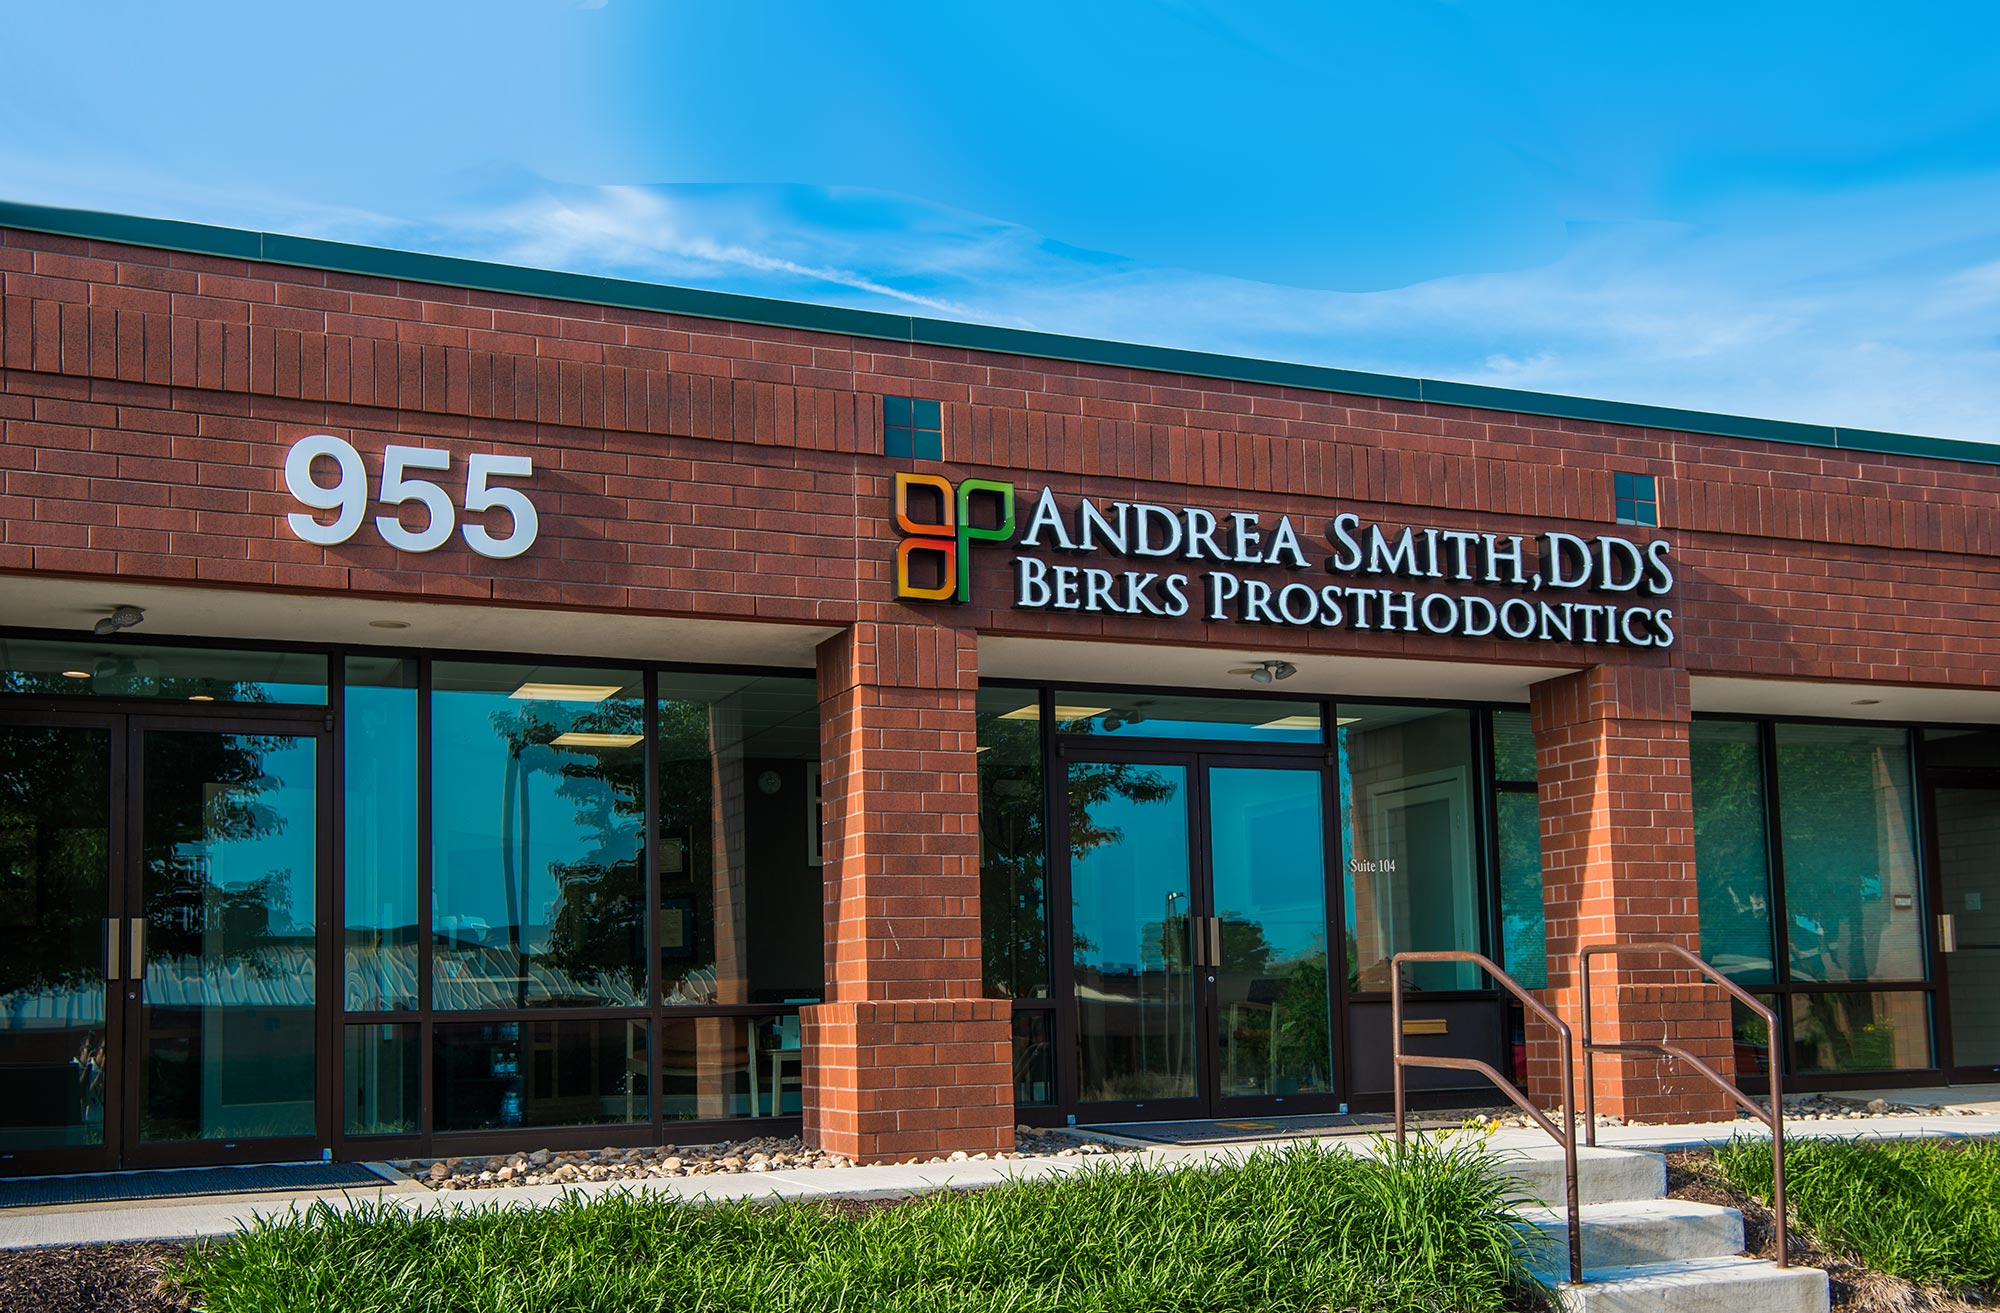 Dr. Andrea Smith , DDS. - Prosthodontist - Office